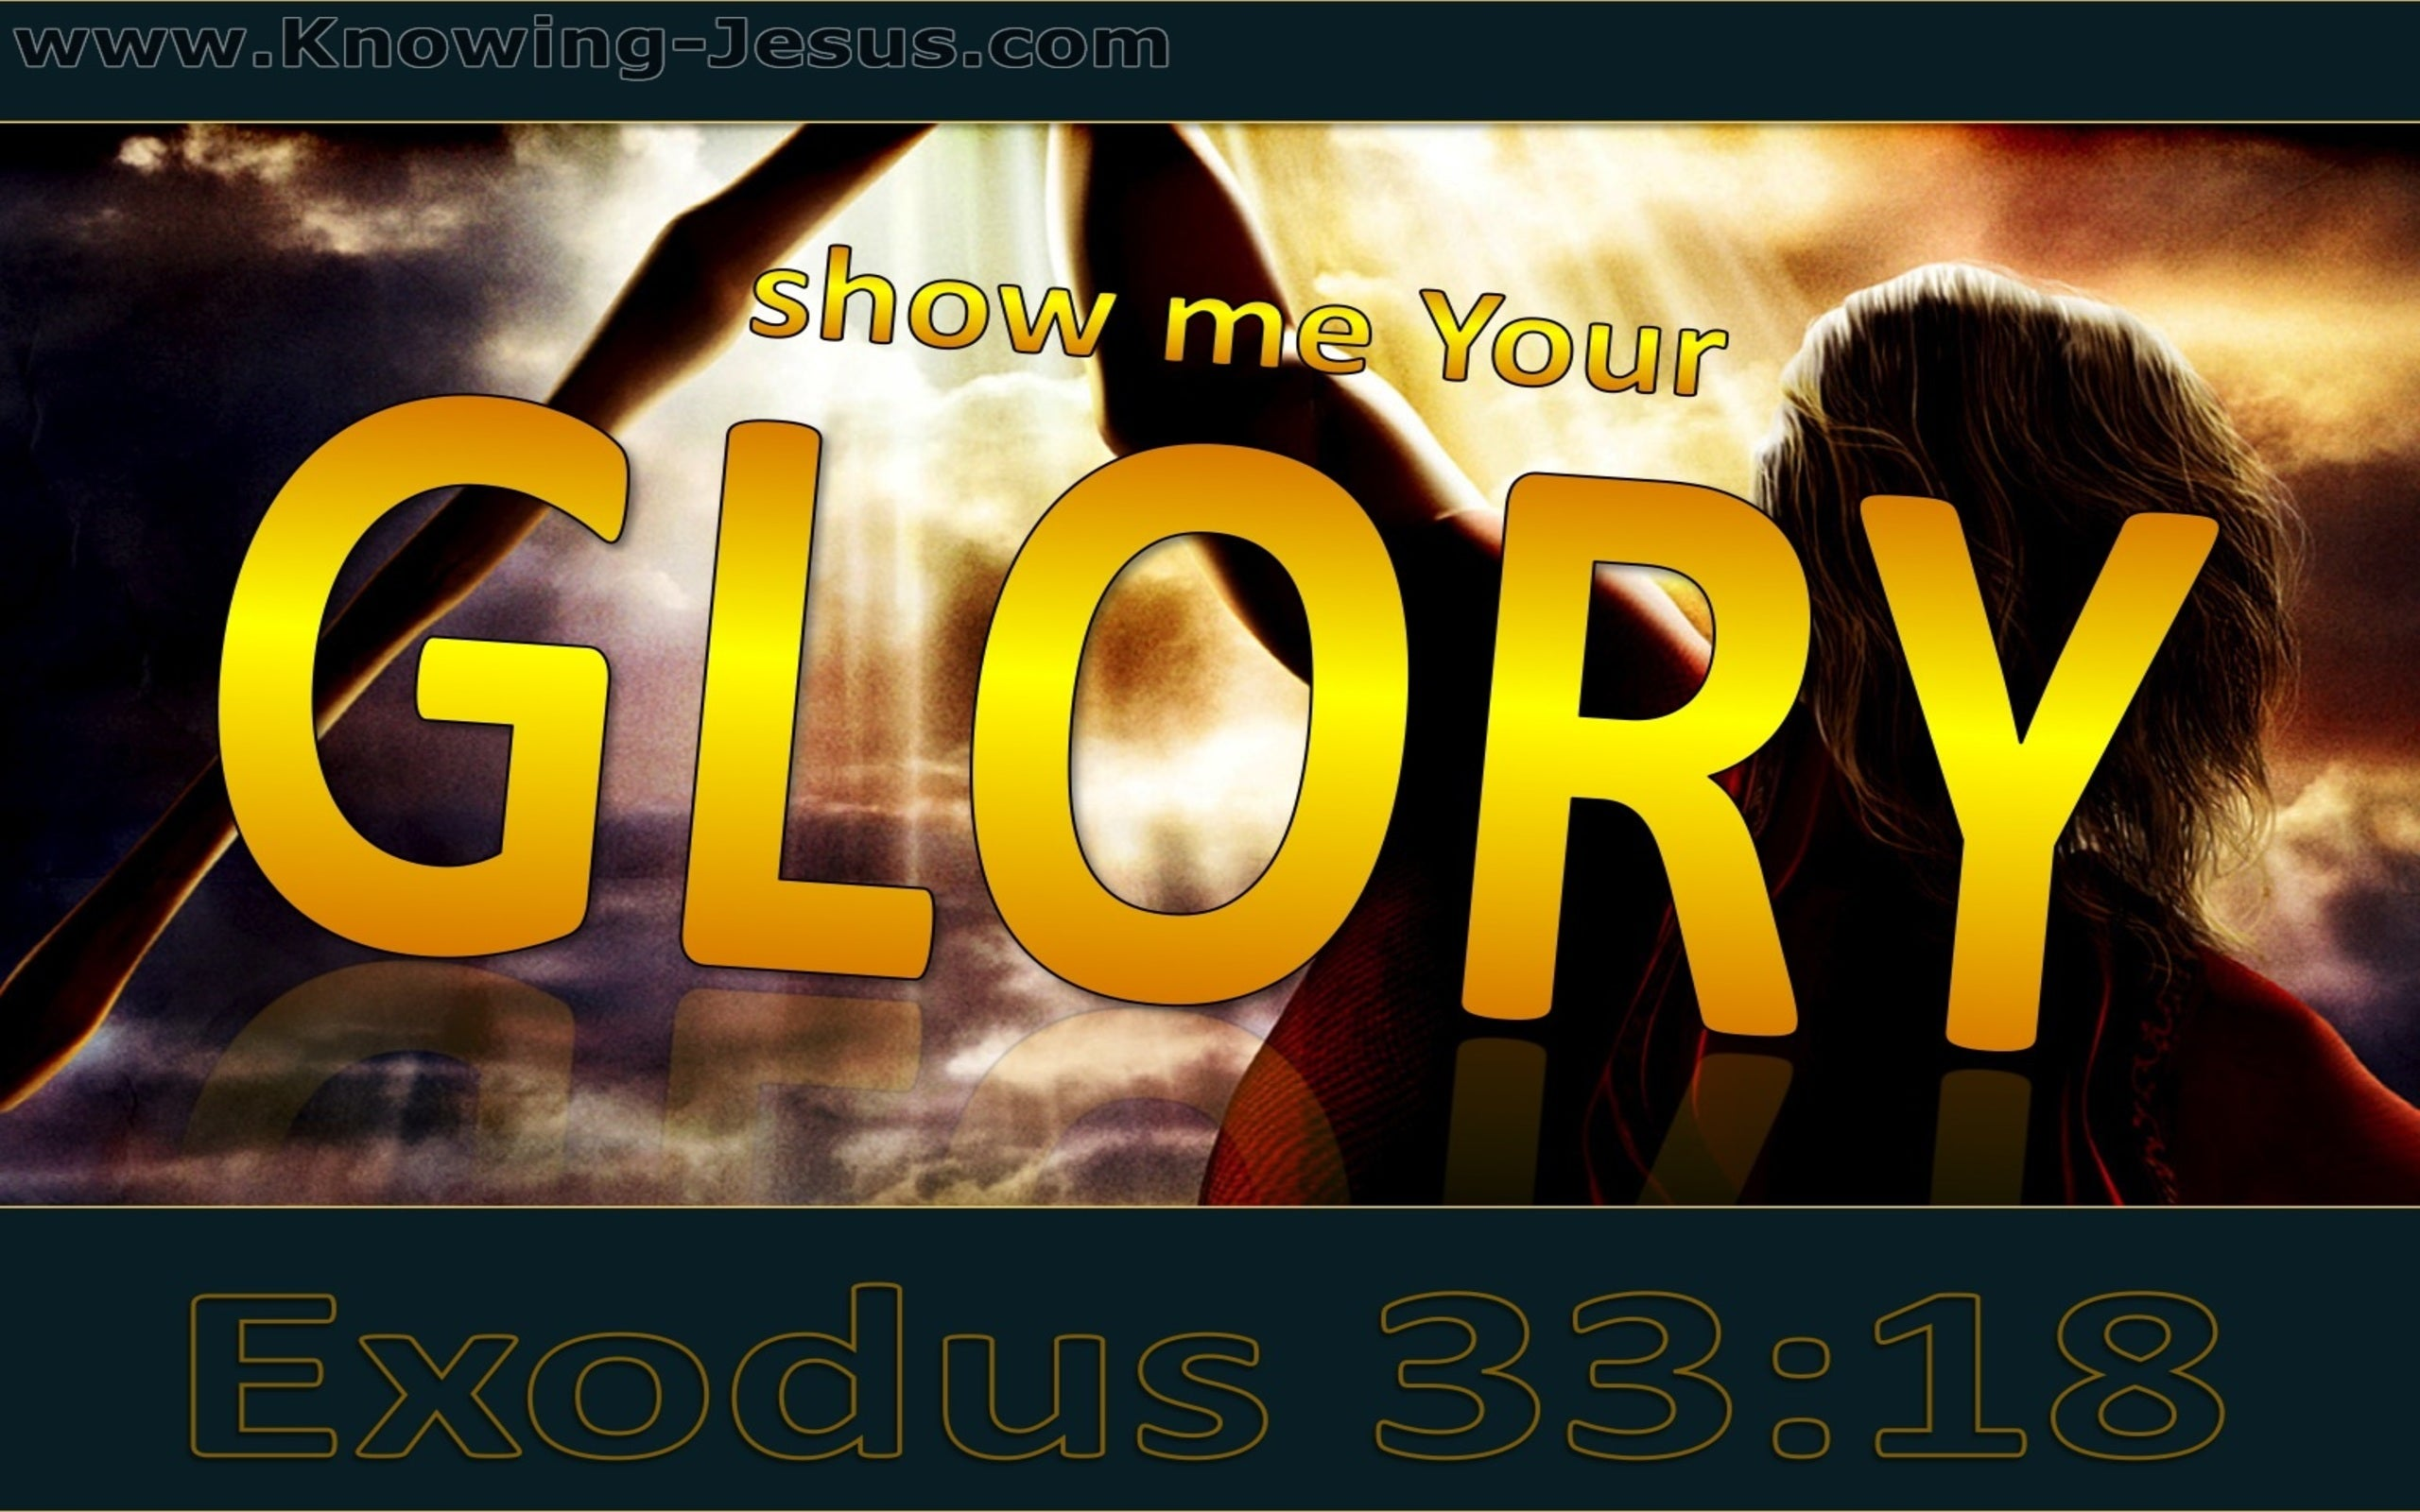 Exodus 33:18 Show Me Your Glory (yellow)